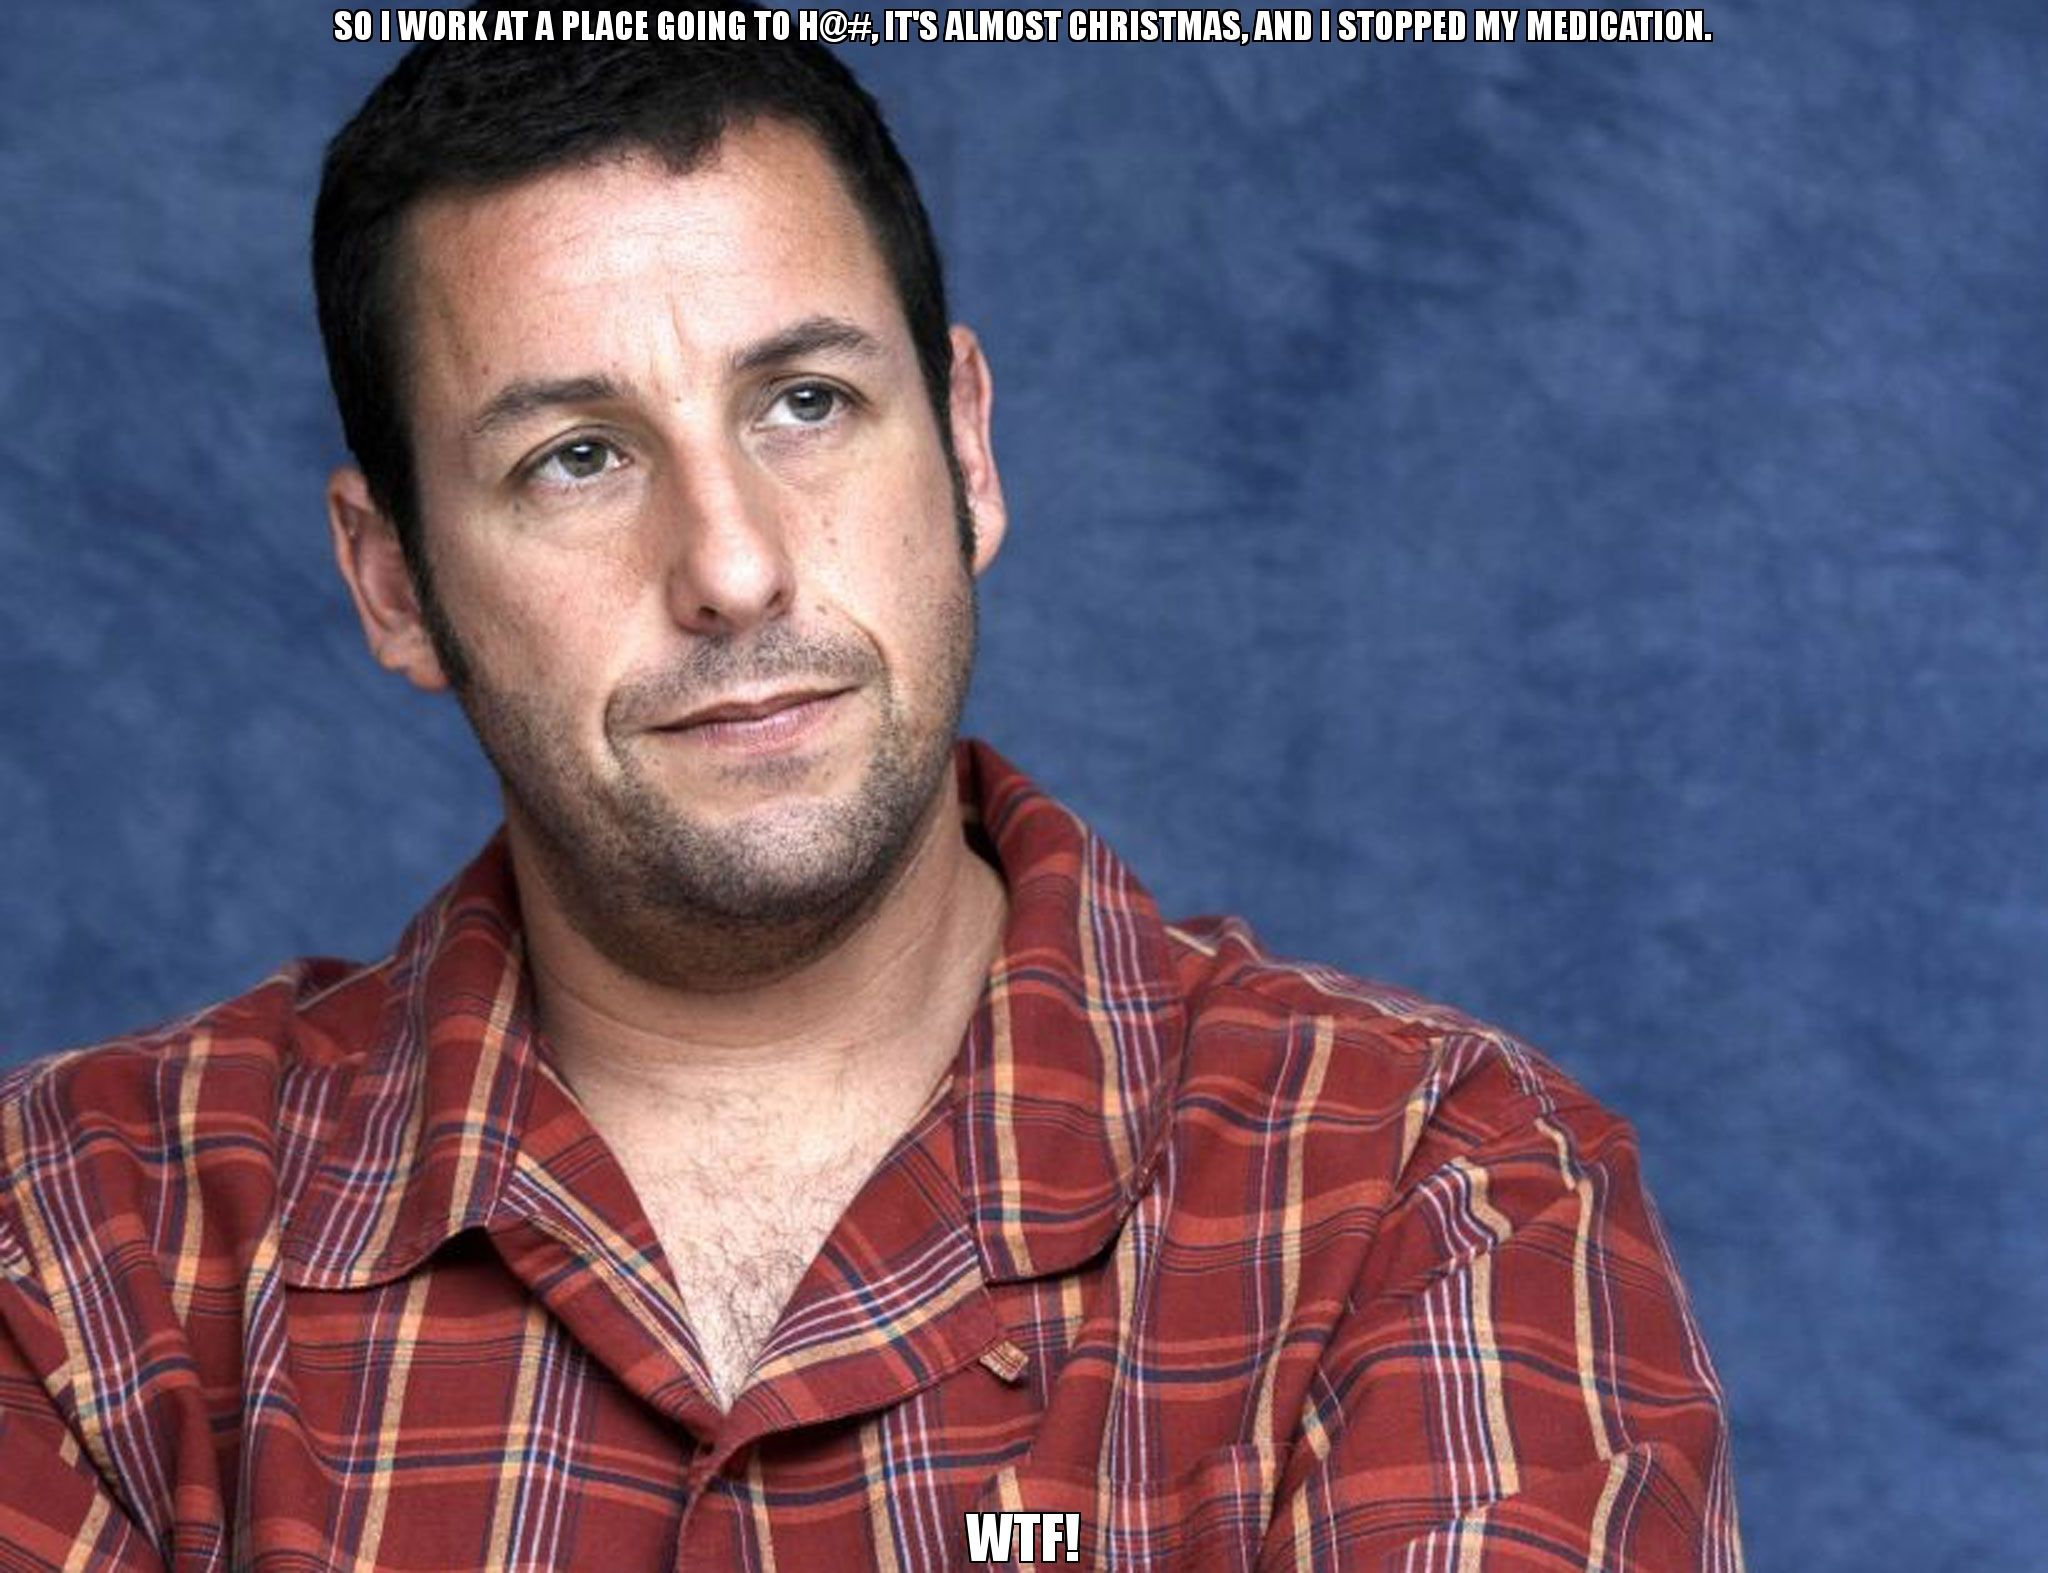 so i work at a place going to h its almost christmas and i stopped my medication wtf meme adam sandler - Adam Sandler Christmas